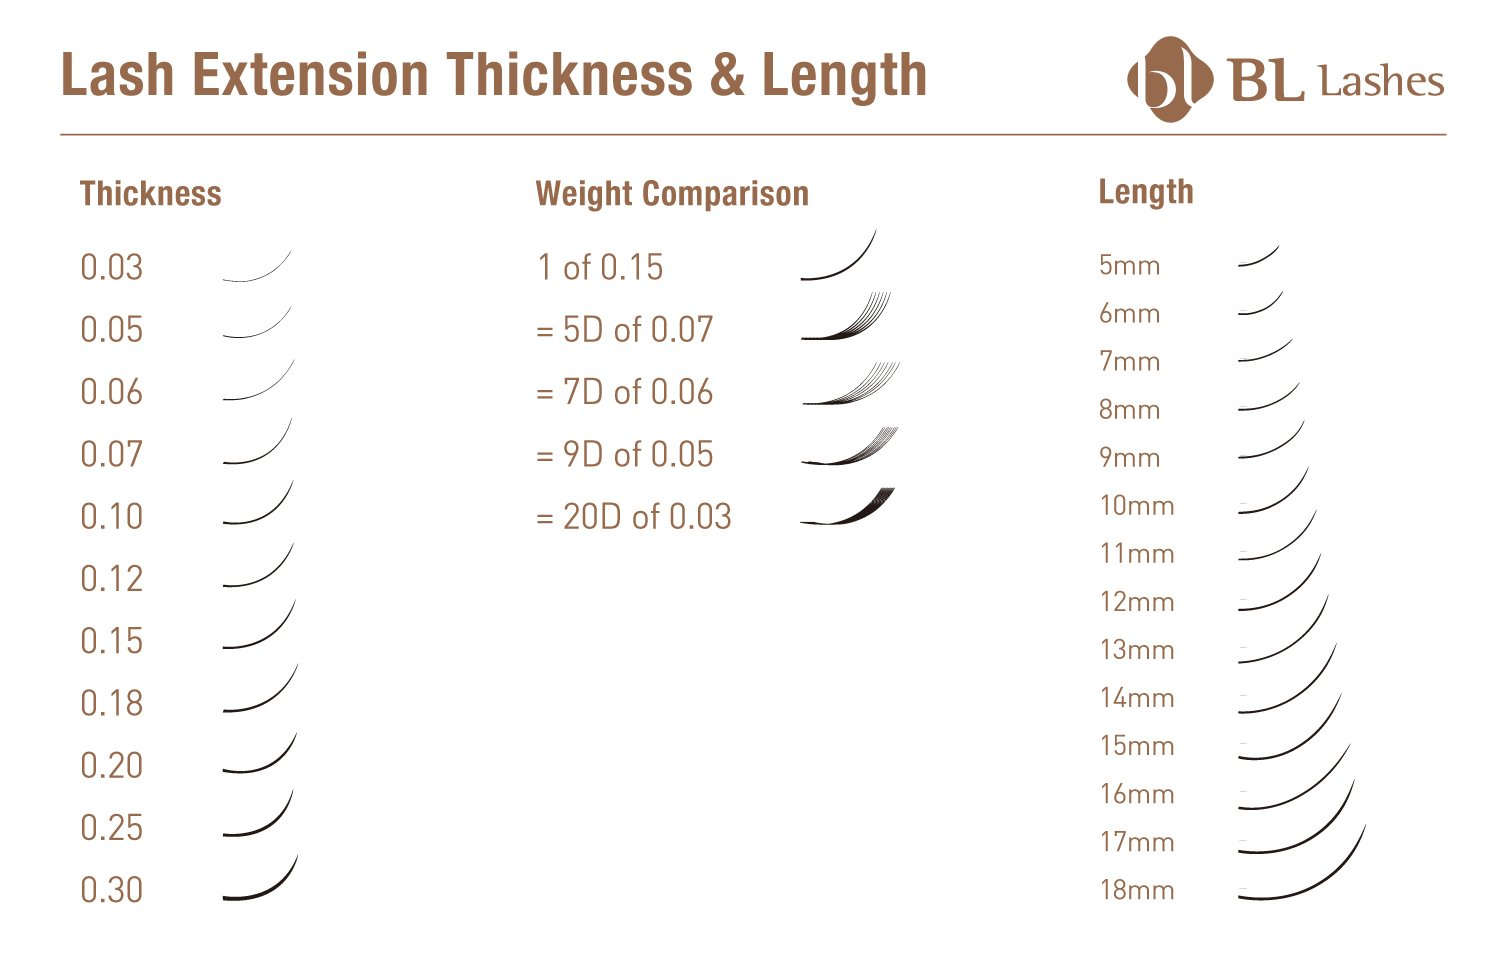 Lash extension thickness and weigh by BL and Blink lashes - eyelash extension supplies and wholesale